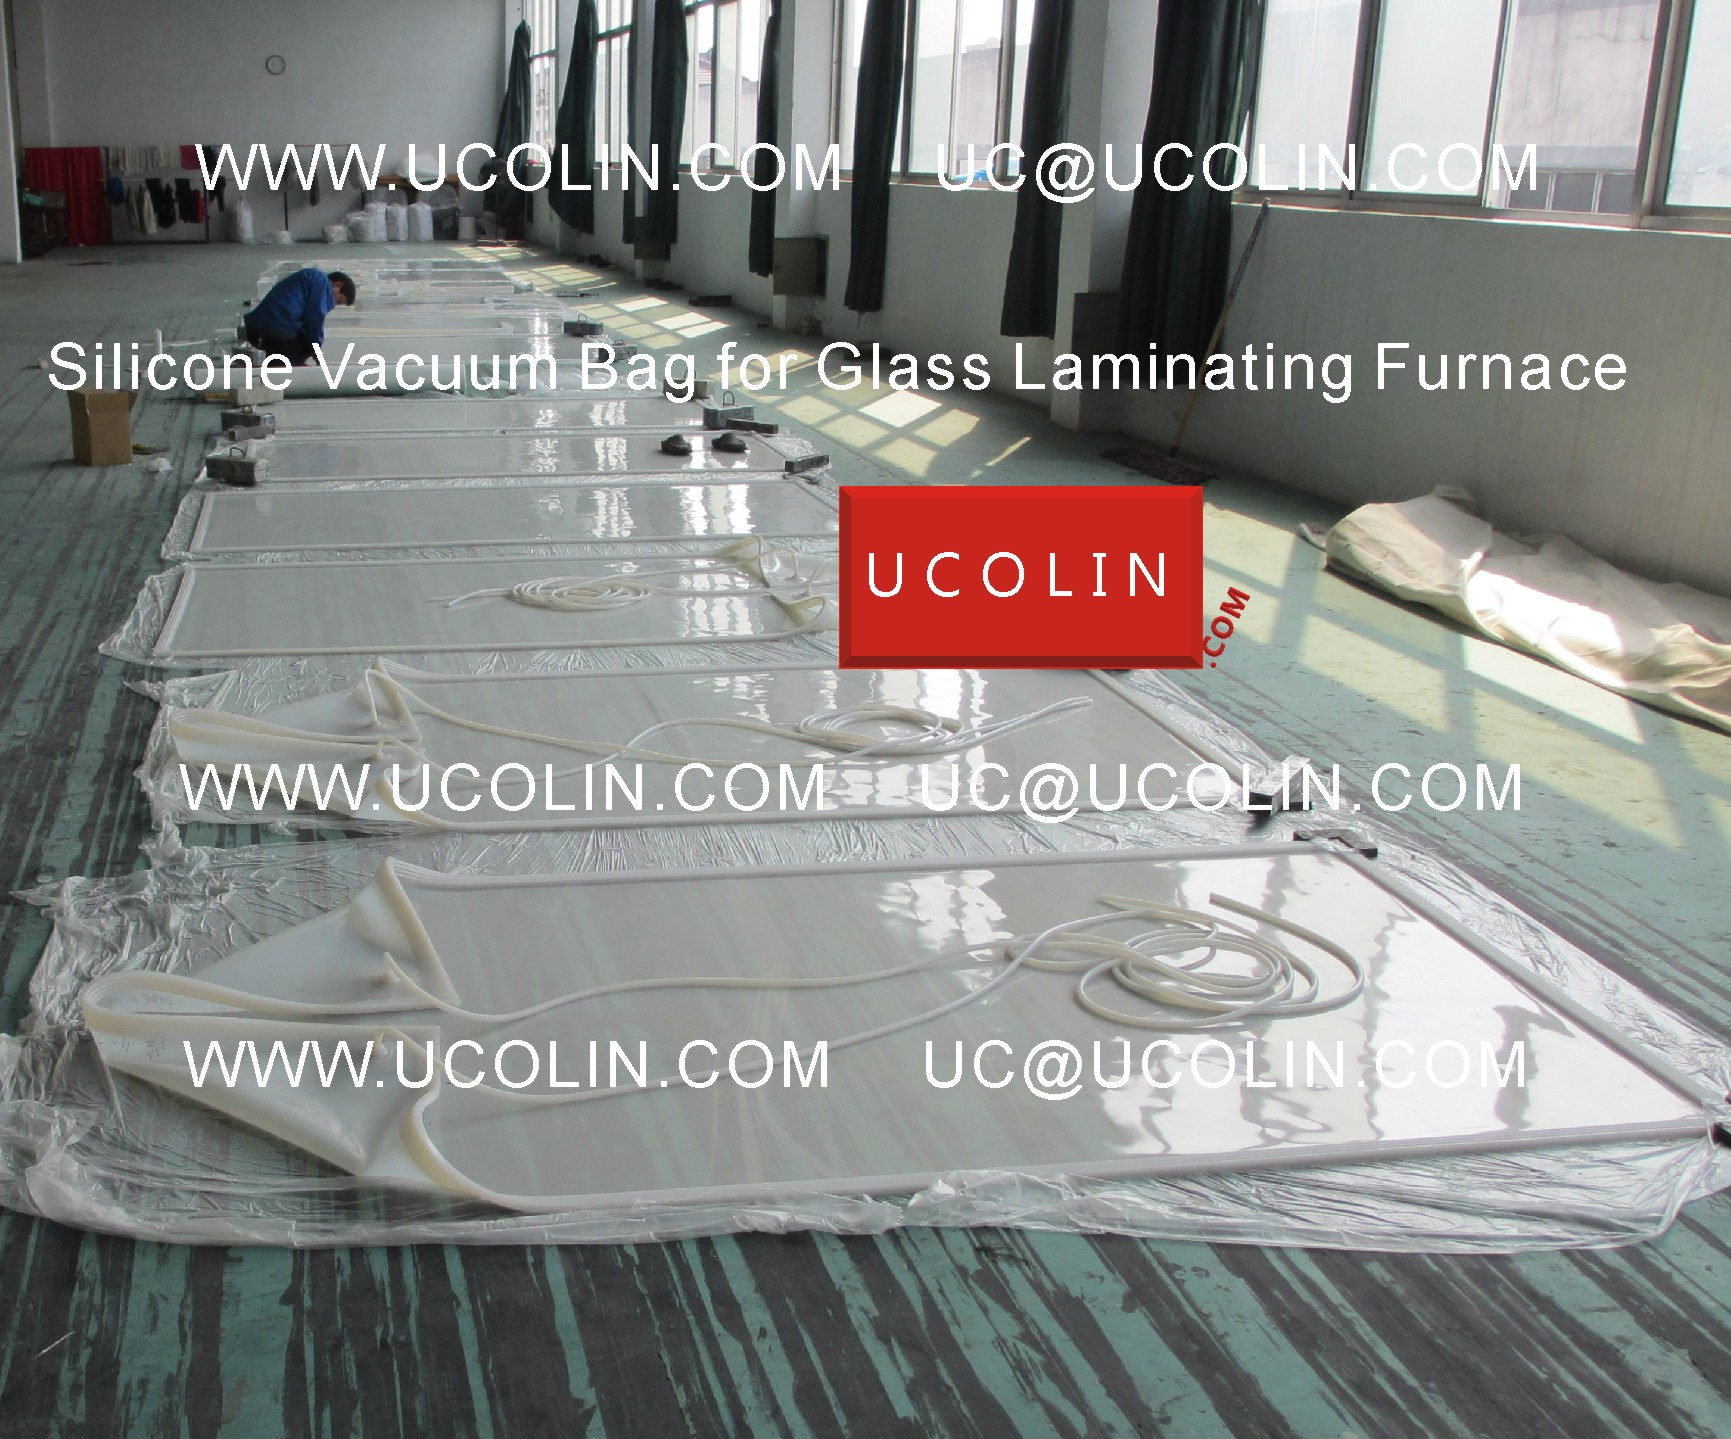 01 Producing of Silicone Vacuum Bag for Glass Laminating Furnace